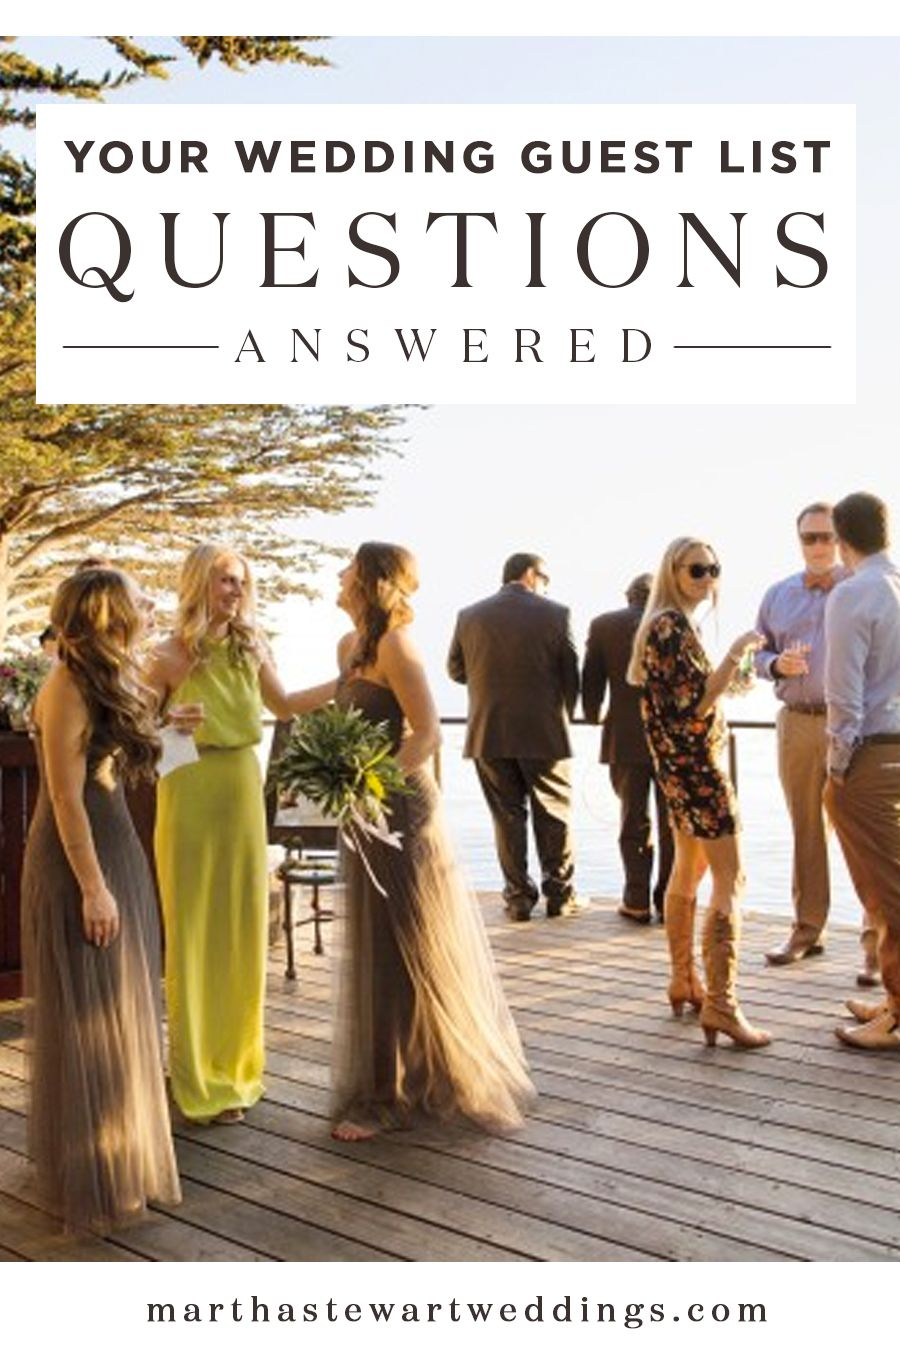 Your Wedding Guest List Etiquette Questions Answered